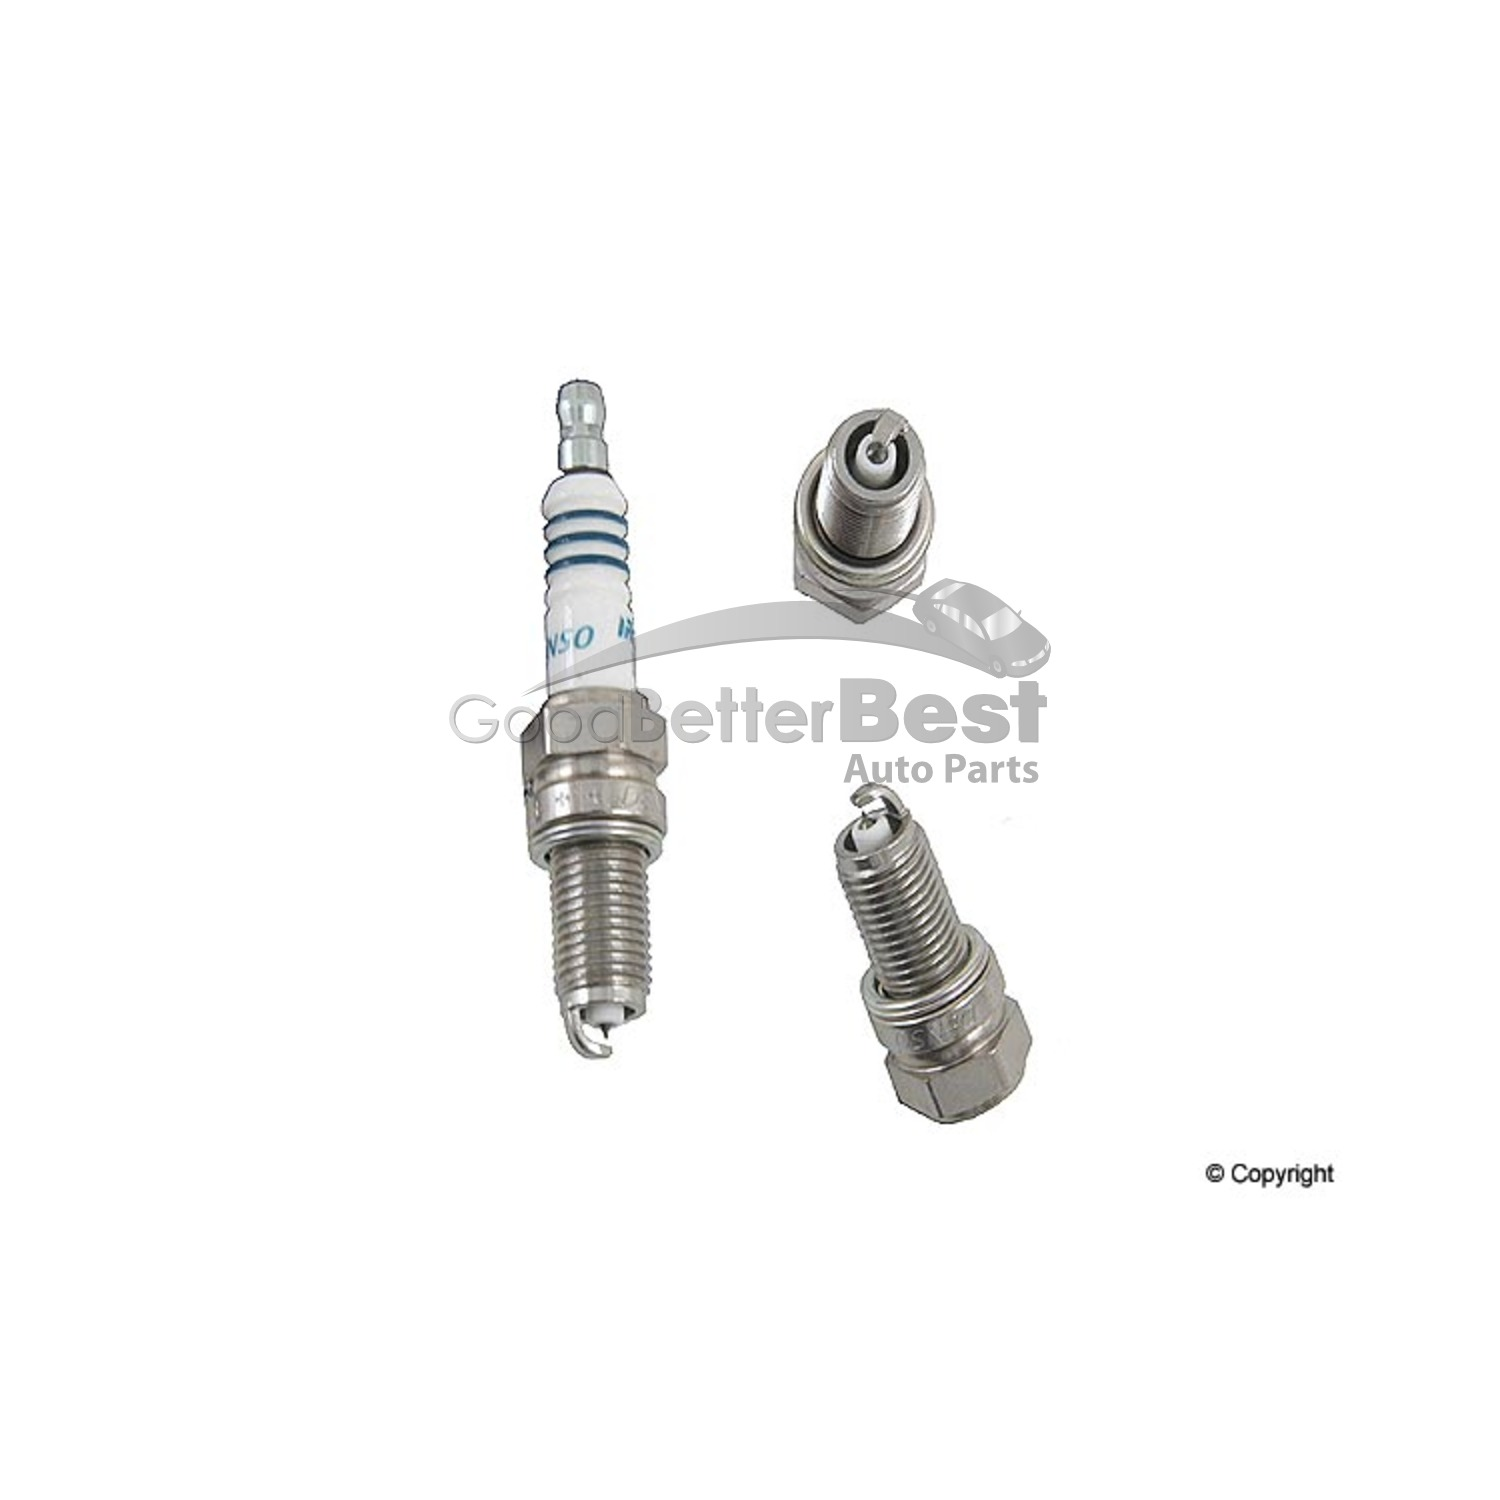 One New Denso Iridium Power Spark Plug Bmw M3 Z4